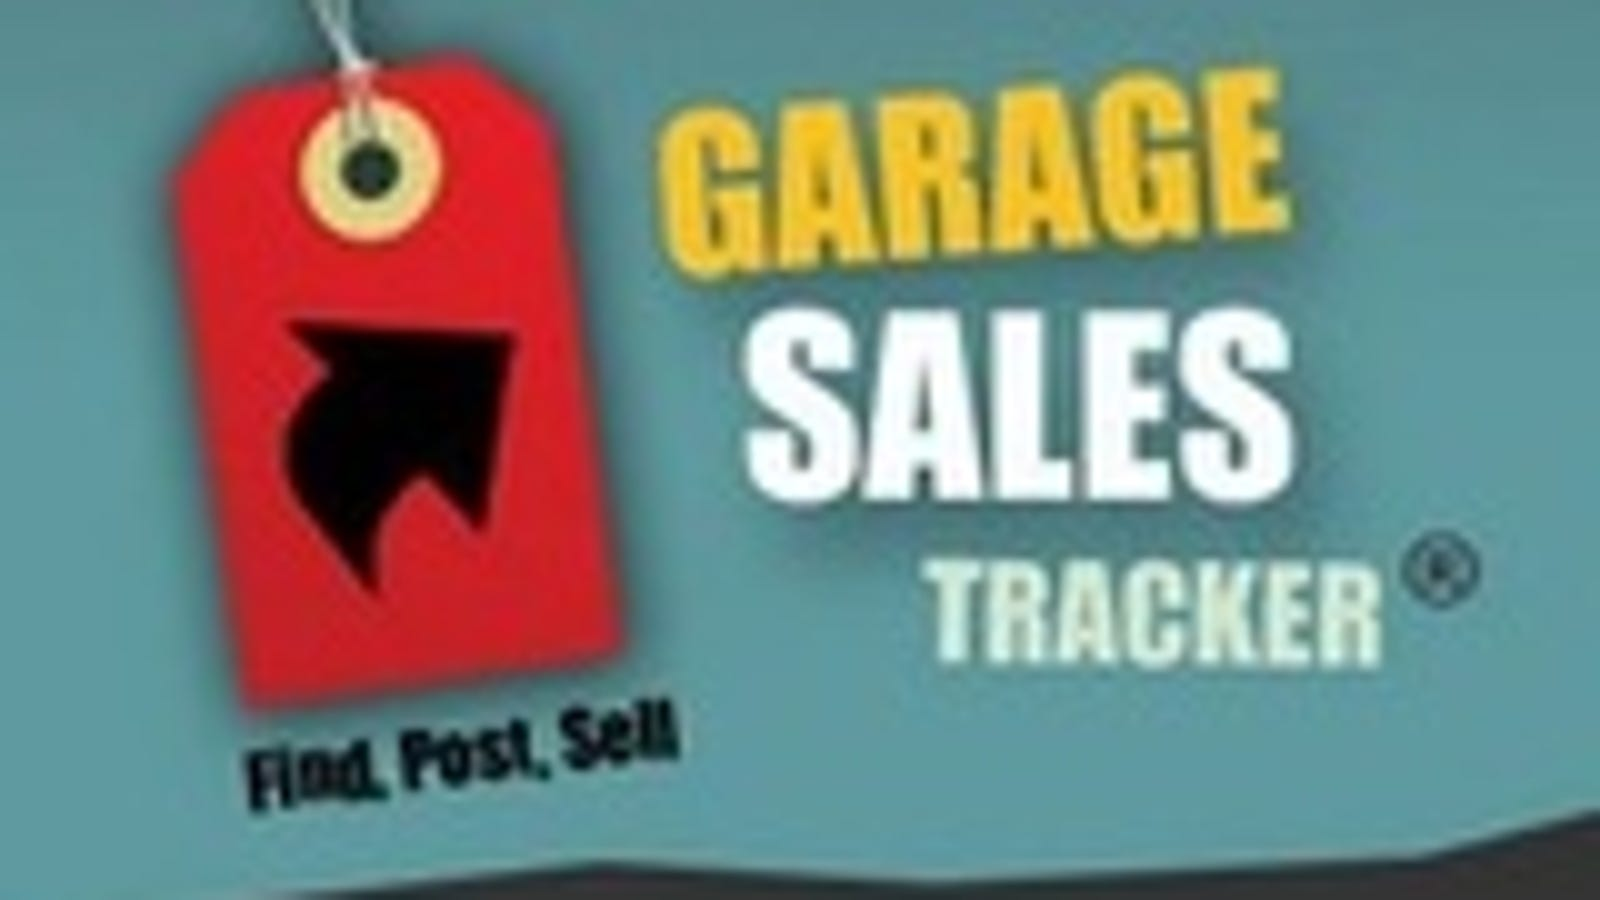 garage sales tracker sorts and maps garage sales for easy loot hunting